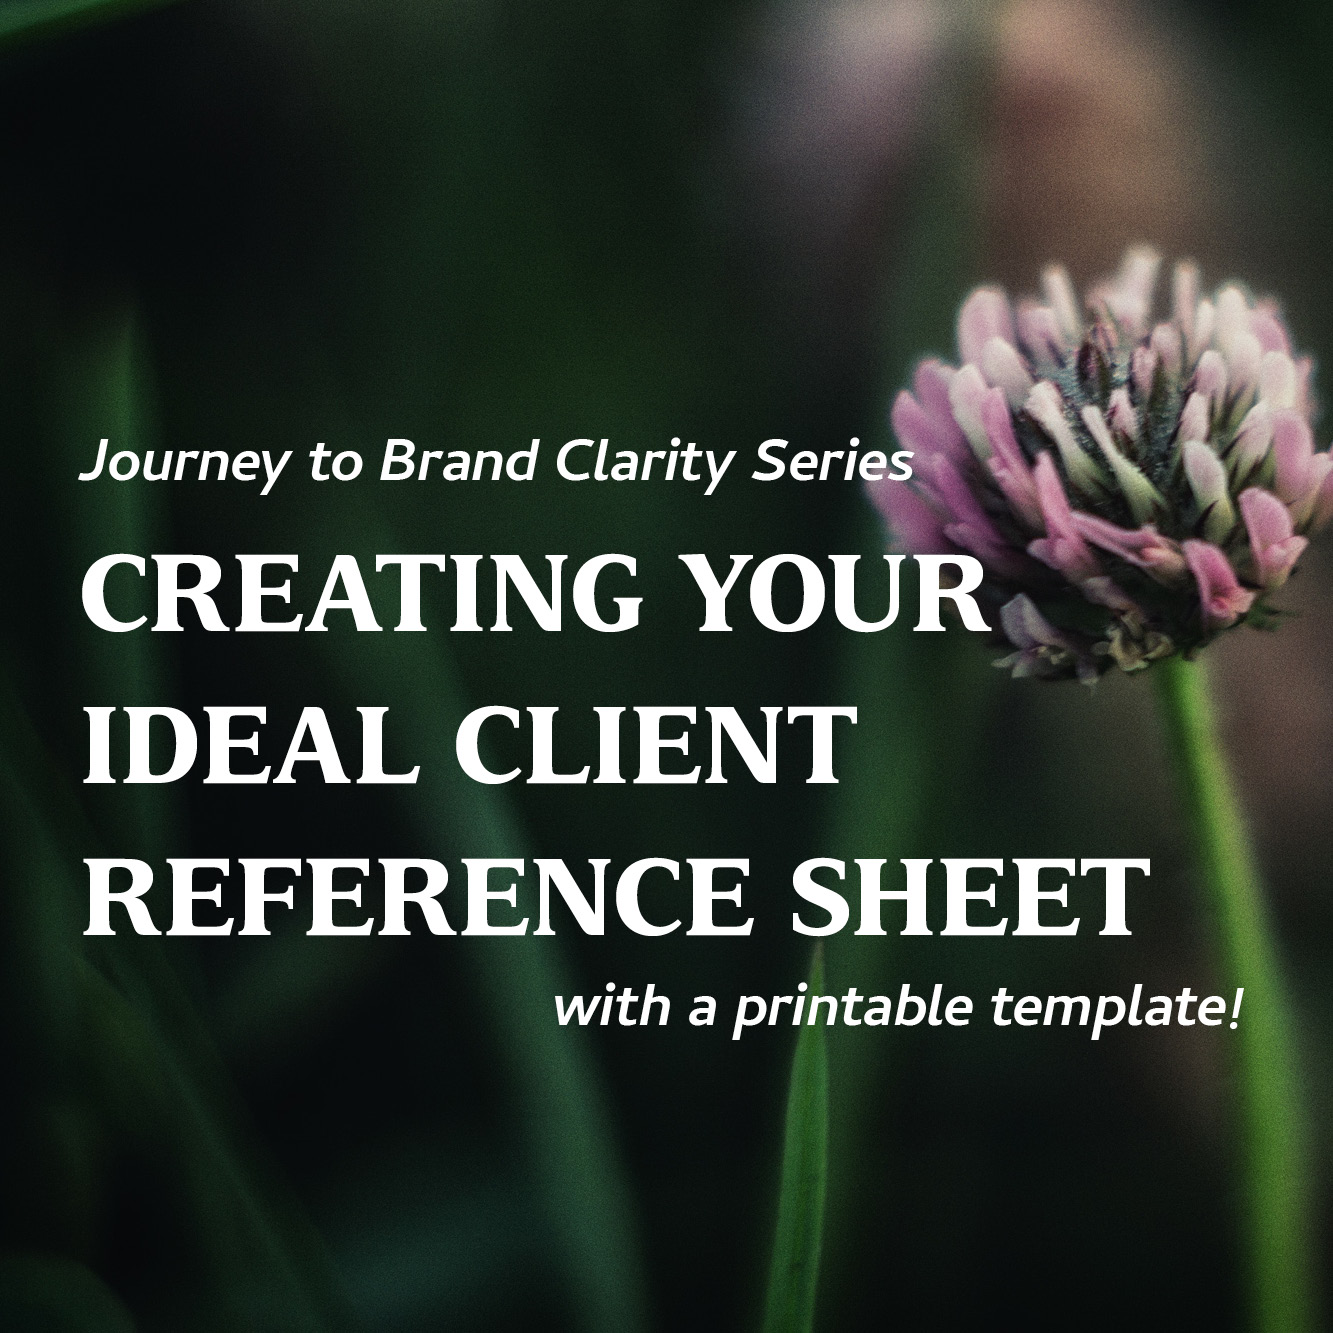 Creating Your Ideal Client Reference Sheet